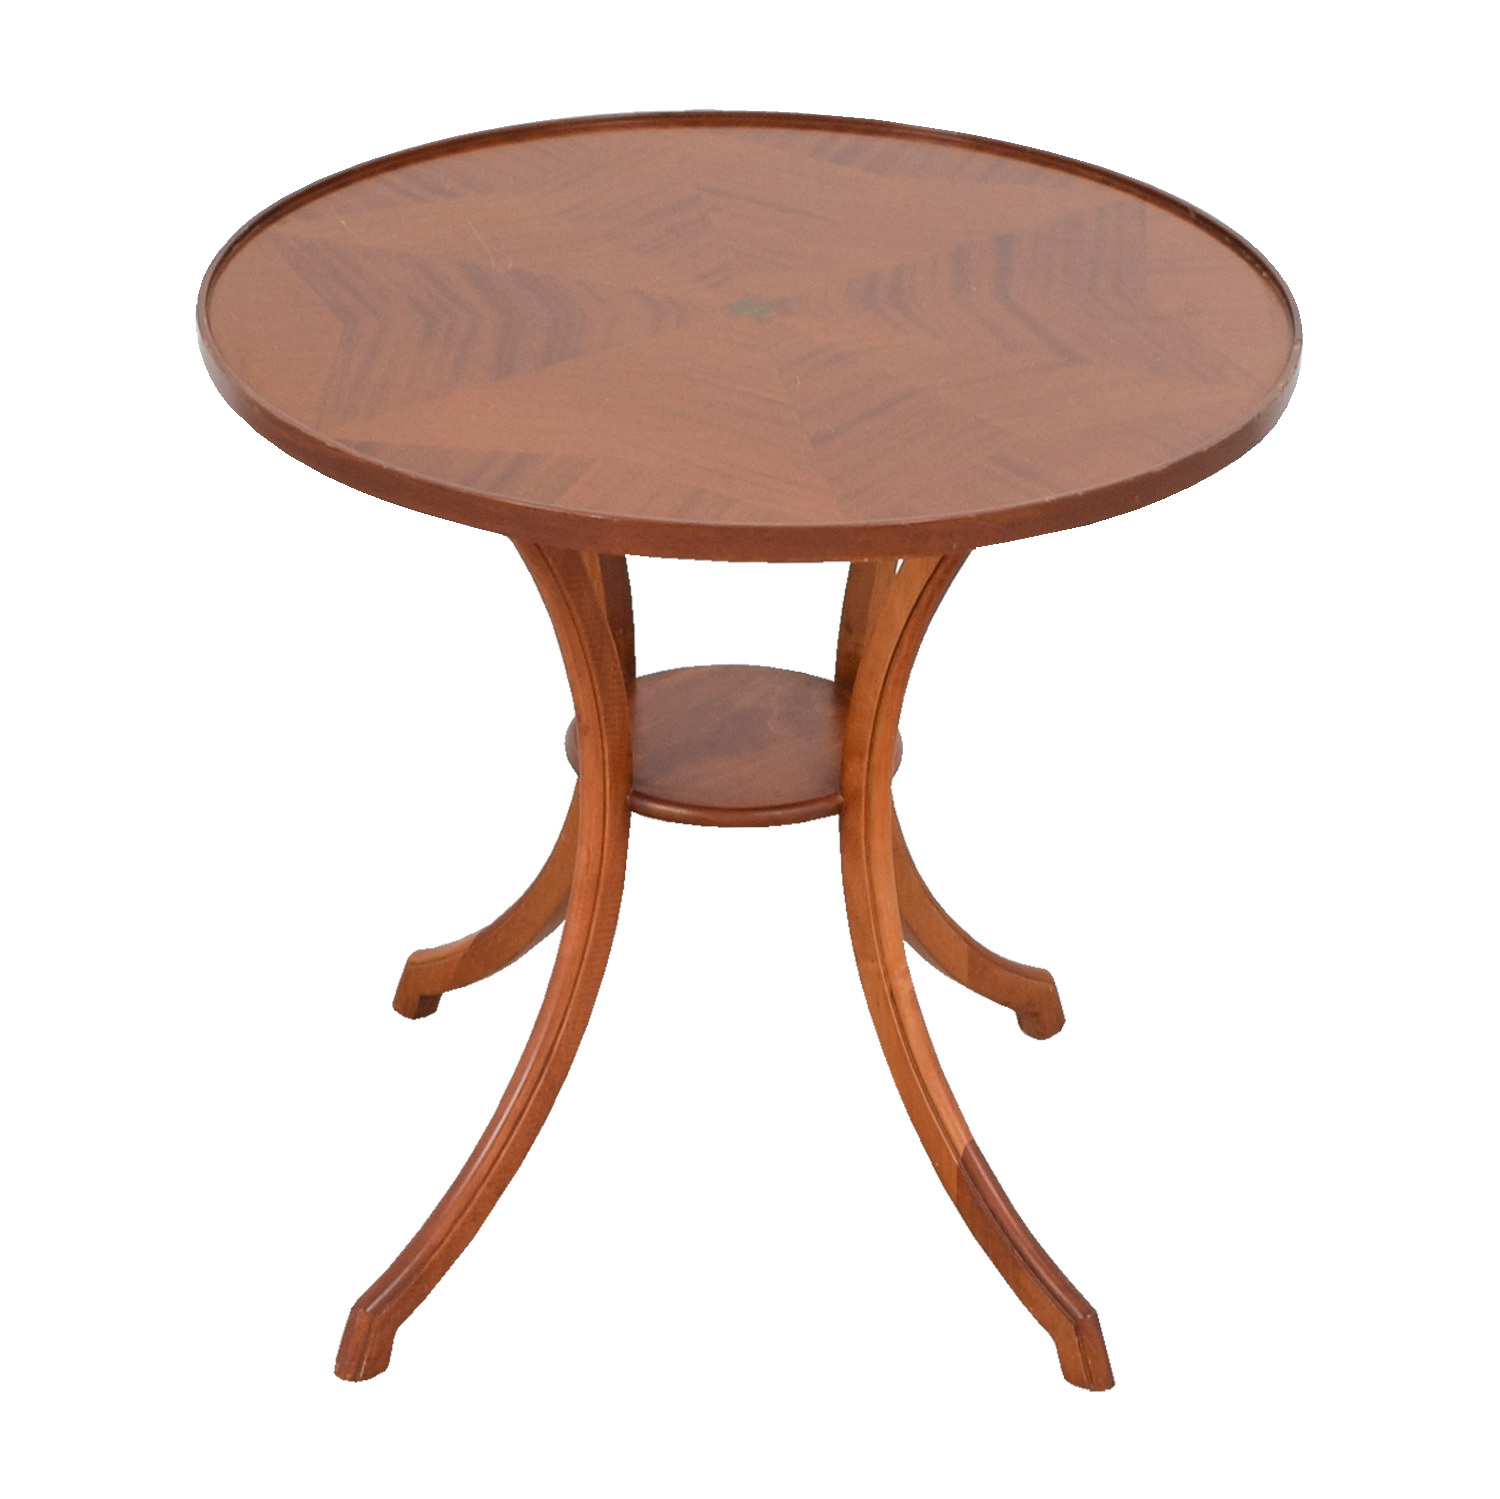 Furniture Masters Furniture Masters Round Wood Accent Table discount